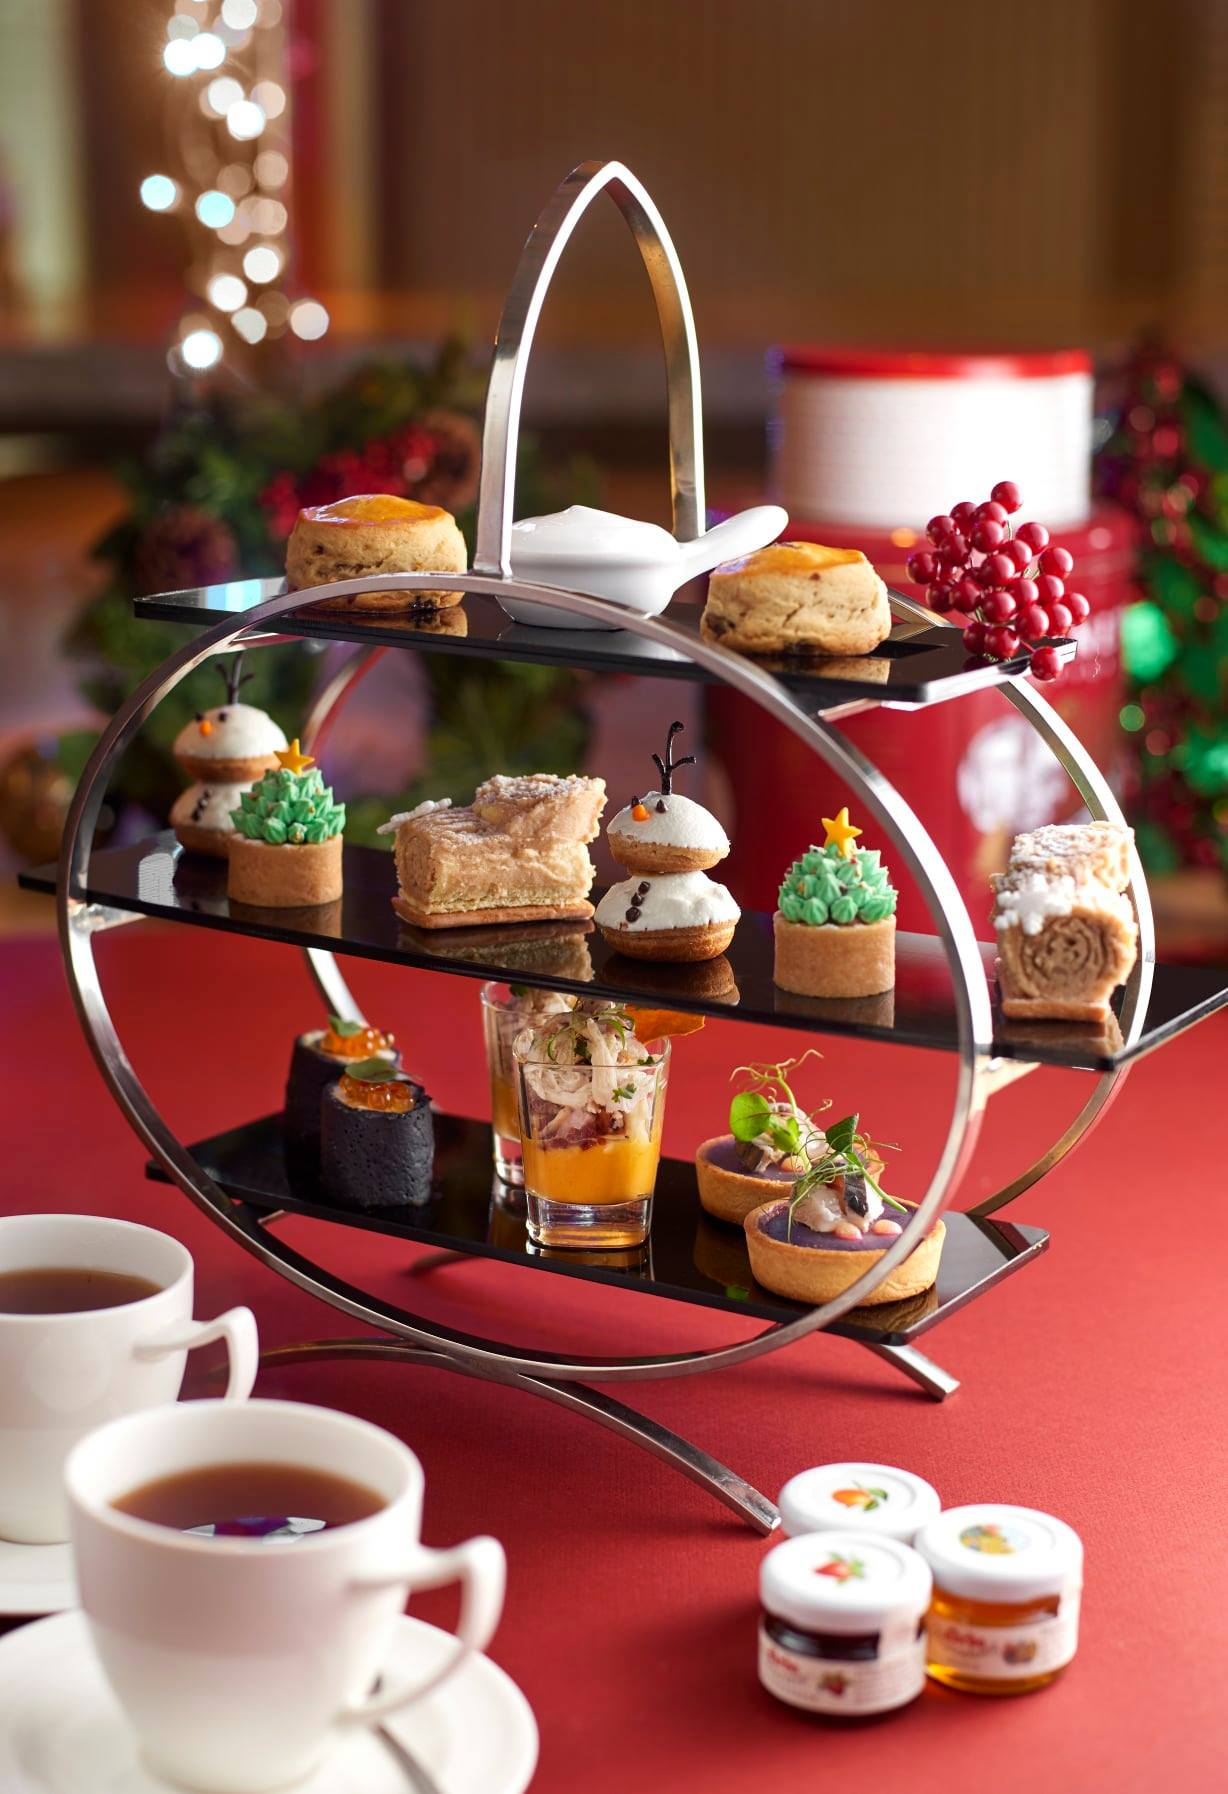 Christmas Joy Afternoon Tea